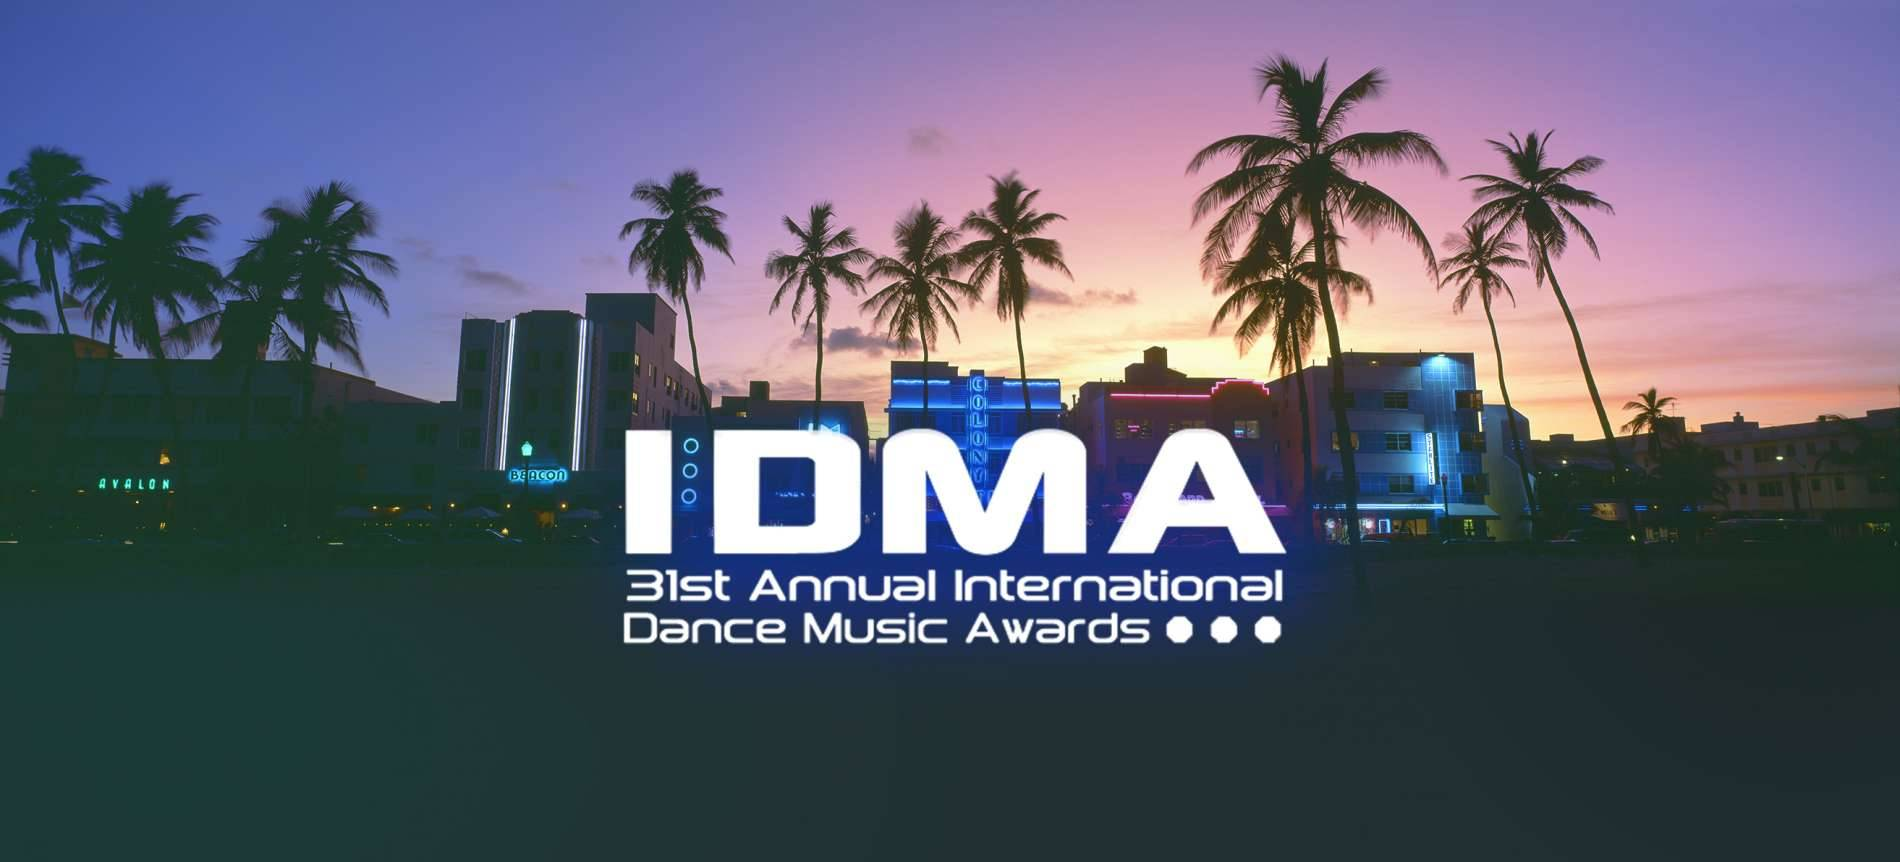 Support Spinnin's artists with this year's IDMA's!